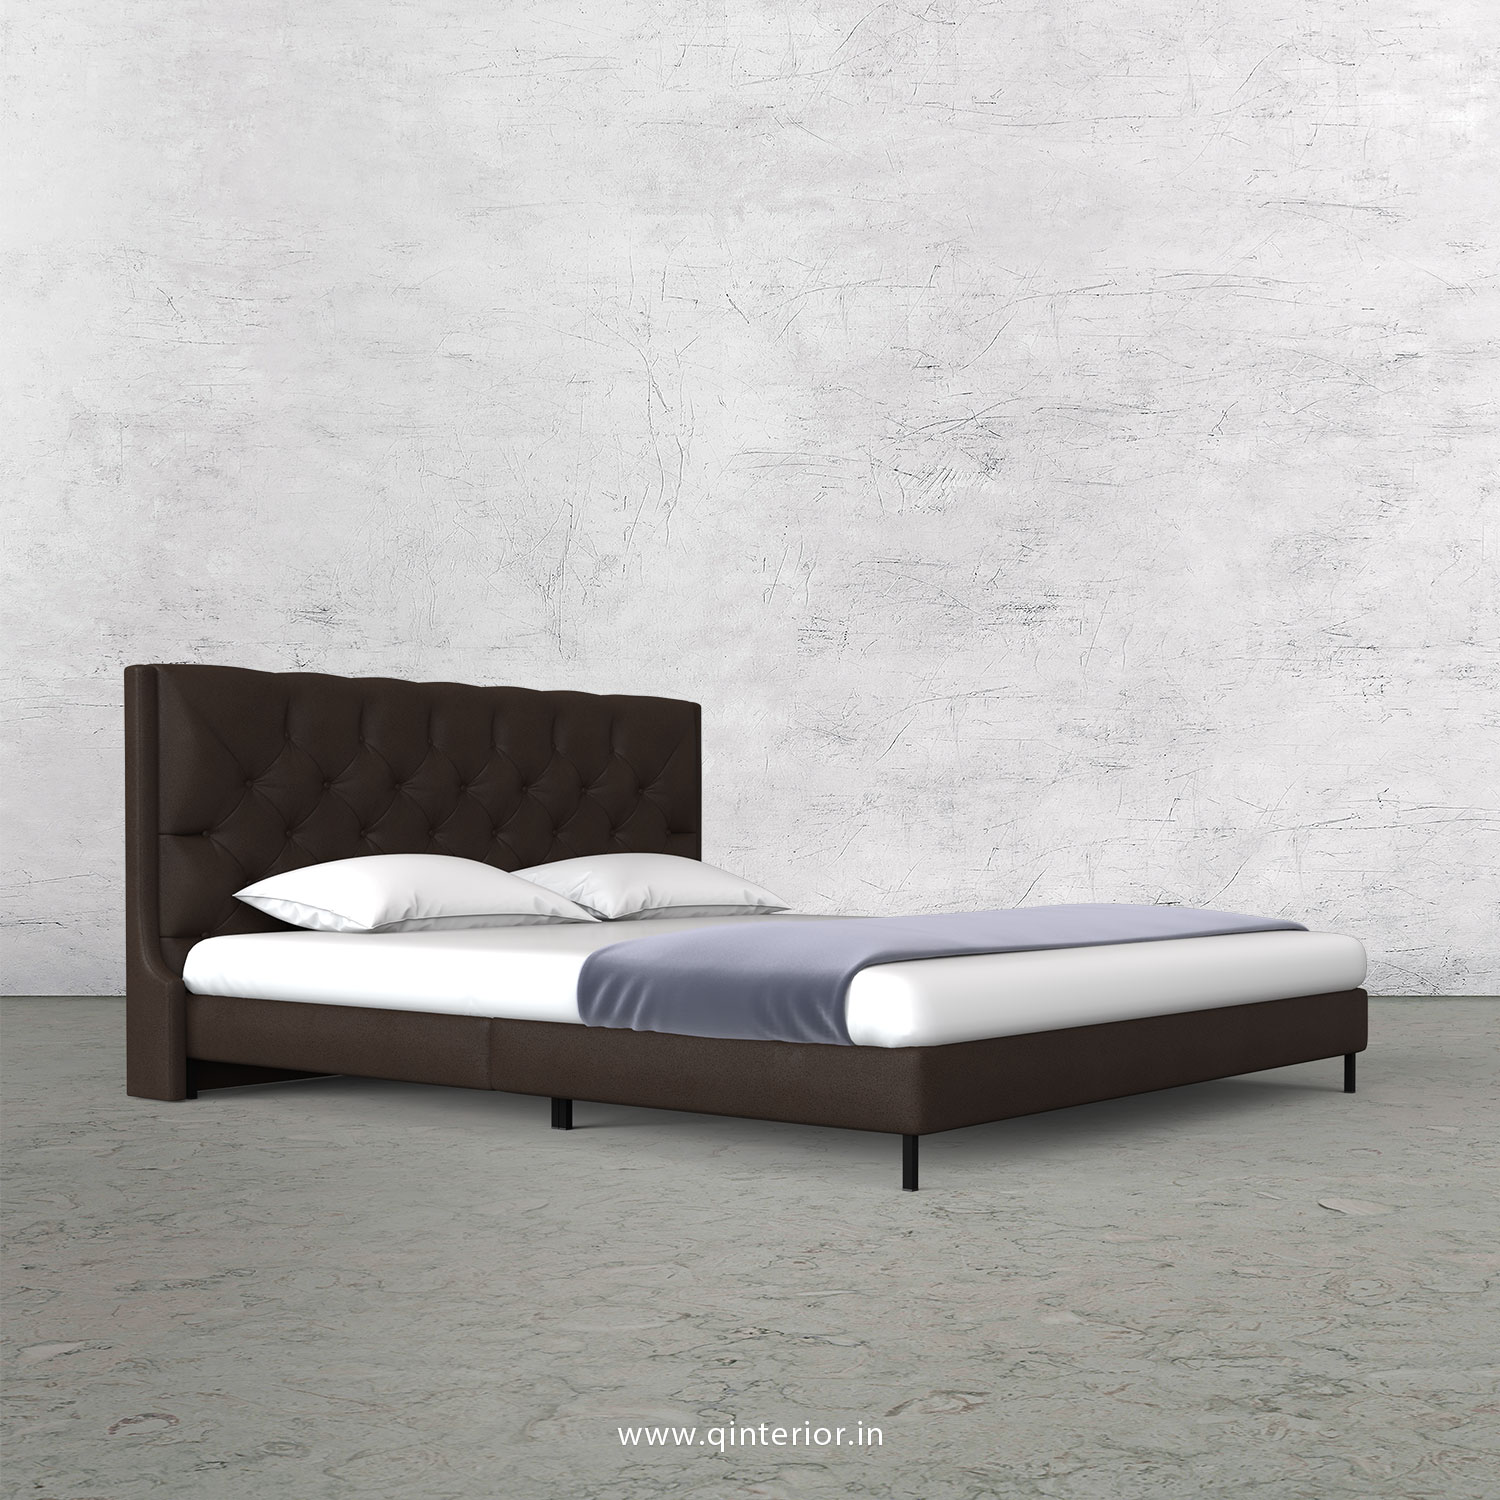 Scorpius Queen Size Bed with Fab Leather Fabric - QBD003 FL16